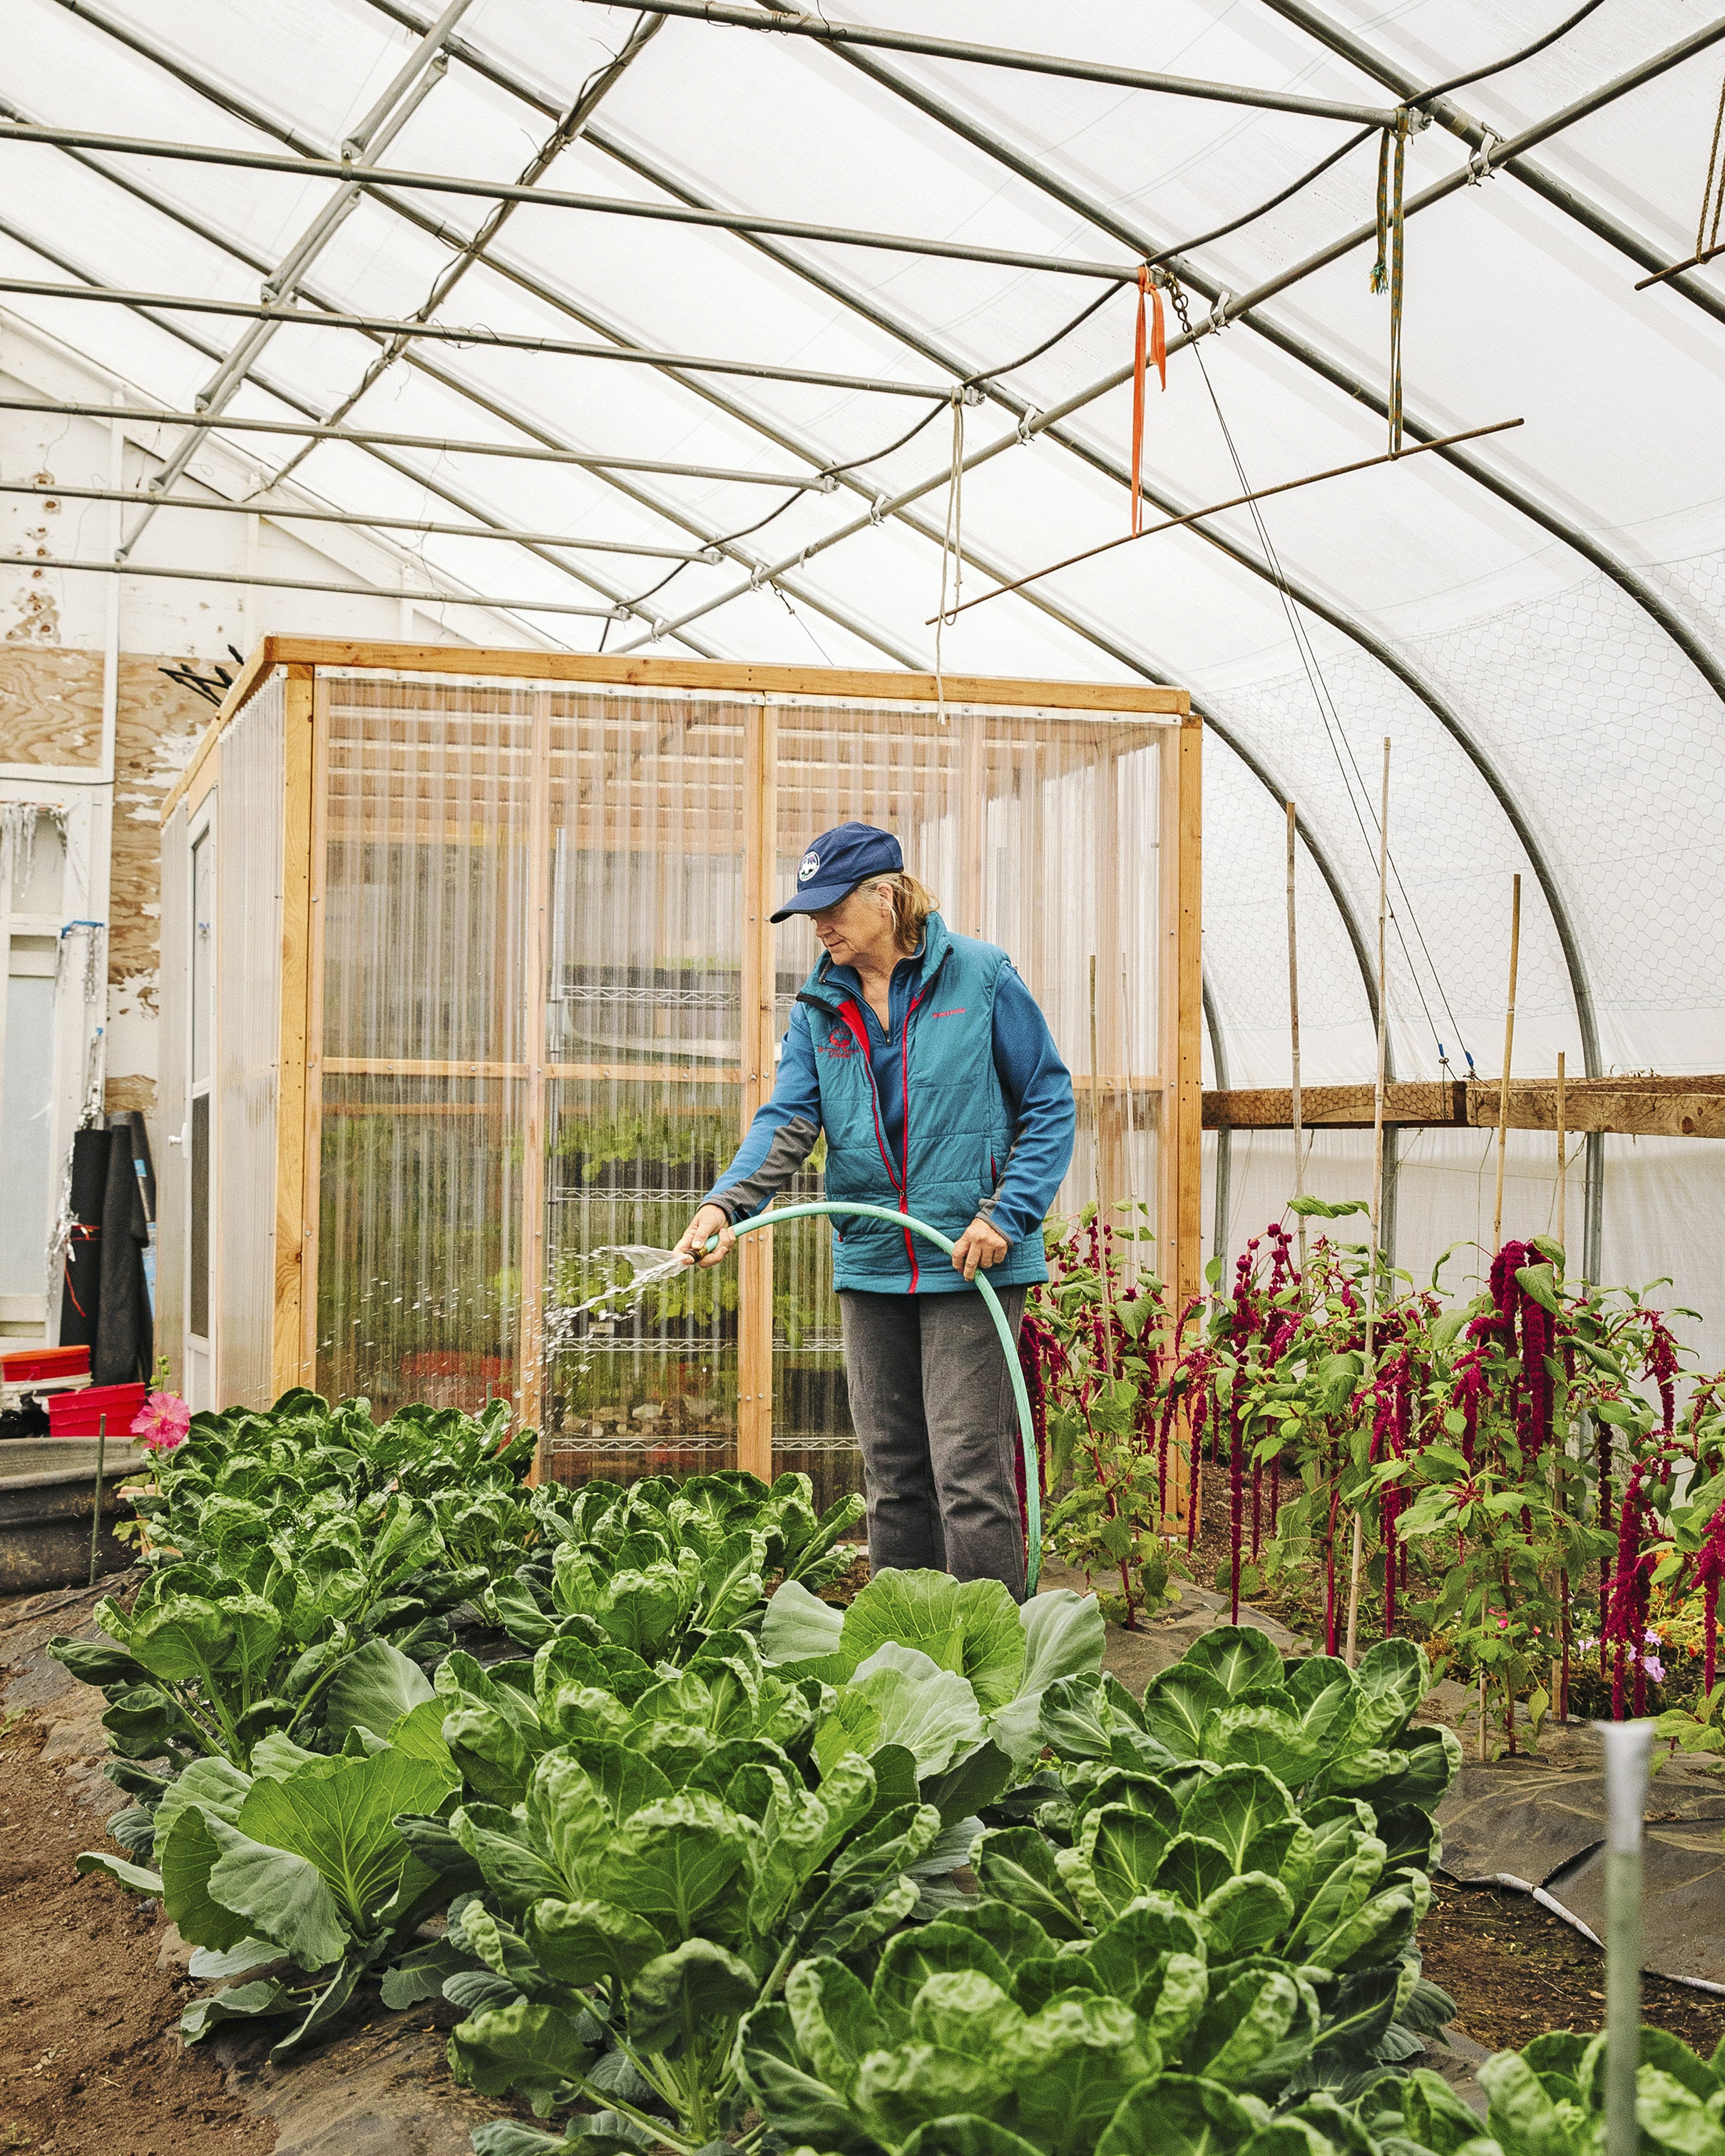 Proprietor Donna Claus waters greens that will go into the lodge's meals.